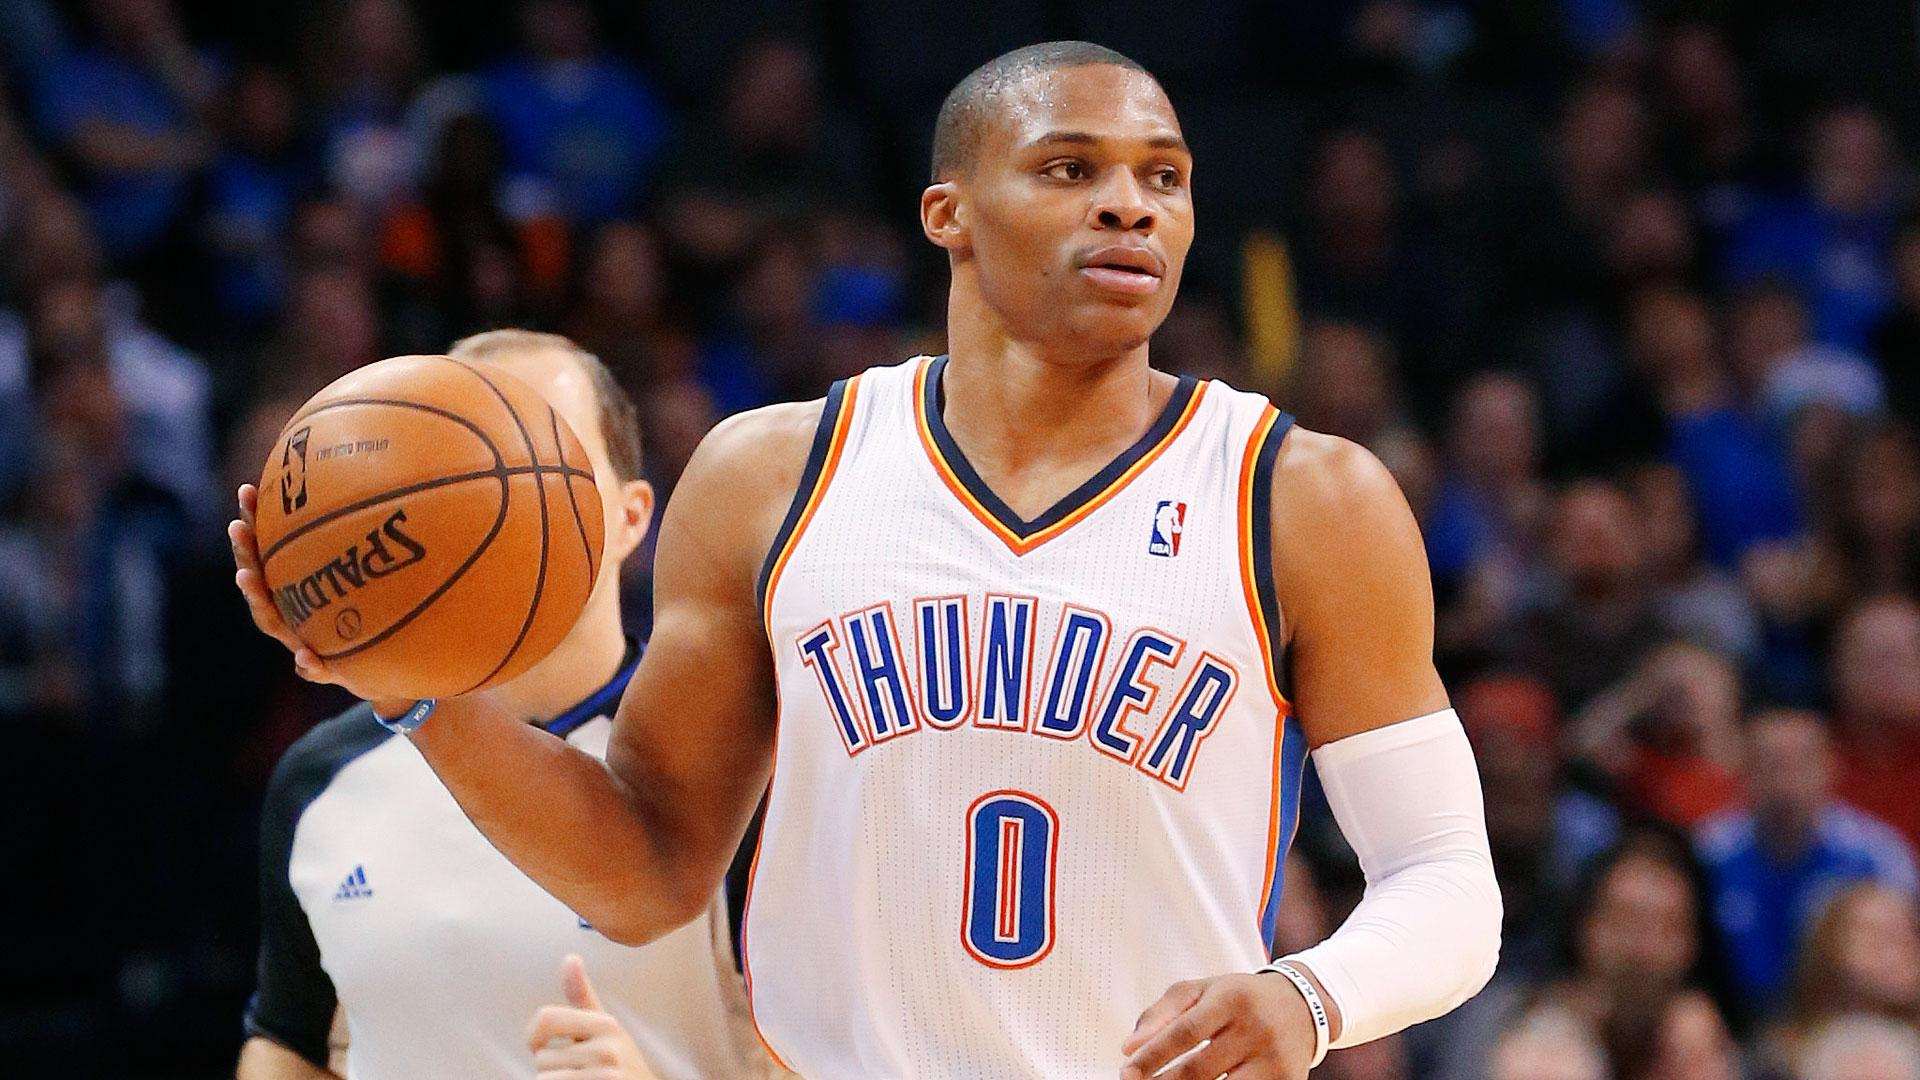 Oklahoma City Thunder guard Russell Westbrook (0) brings the ball up the court in the fourth quarter of an NBA basketball game against the Orlando Magic in Oklahoma City, Sunday, Dec. 15, 2013. Oklahoma City won 101-98. (AP Photo/Sue Ogrocki)